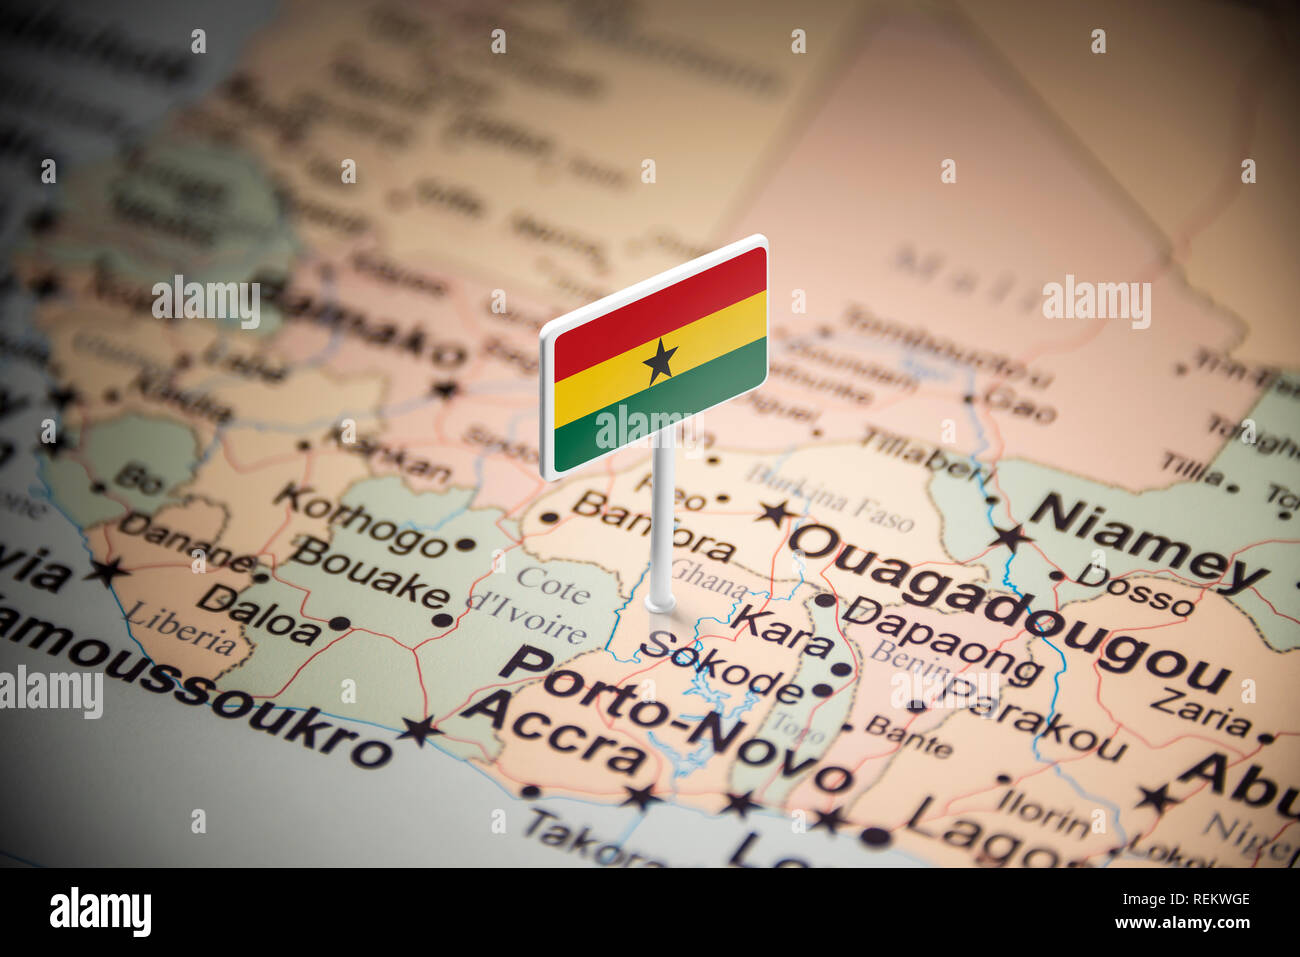 Ghana marked with a flag on the map - Stock Image